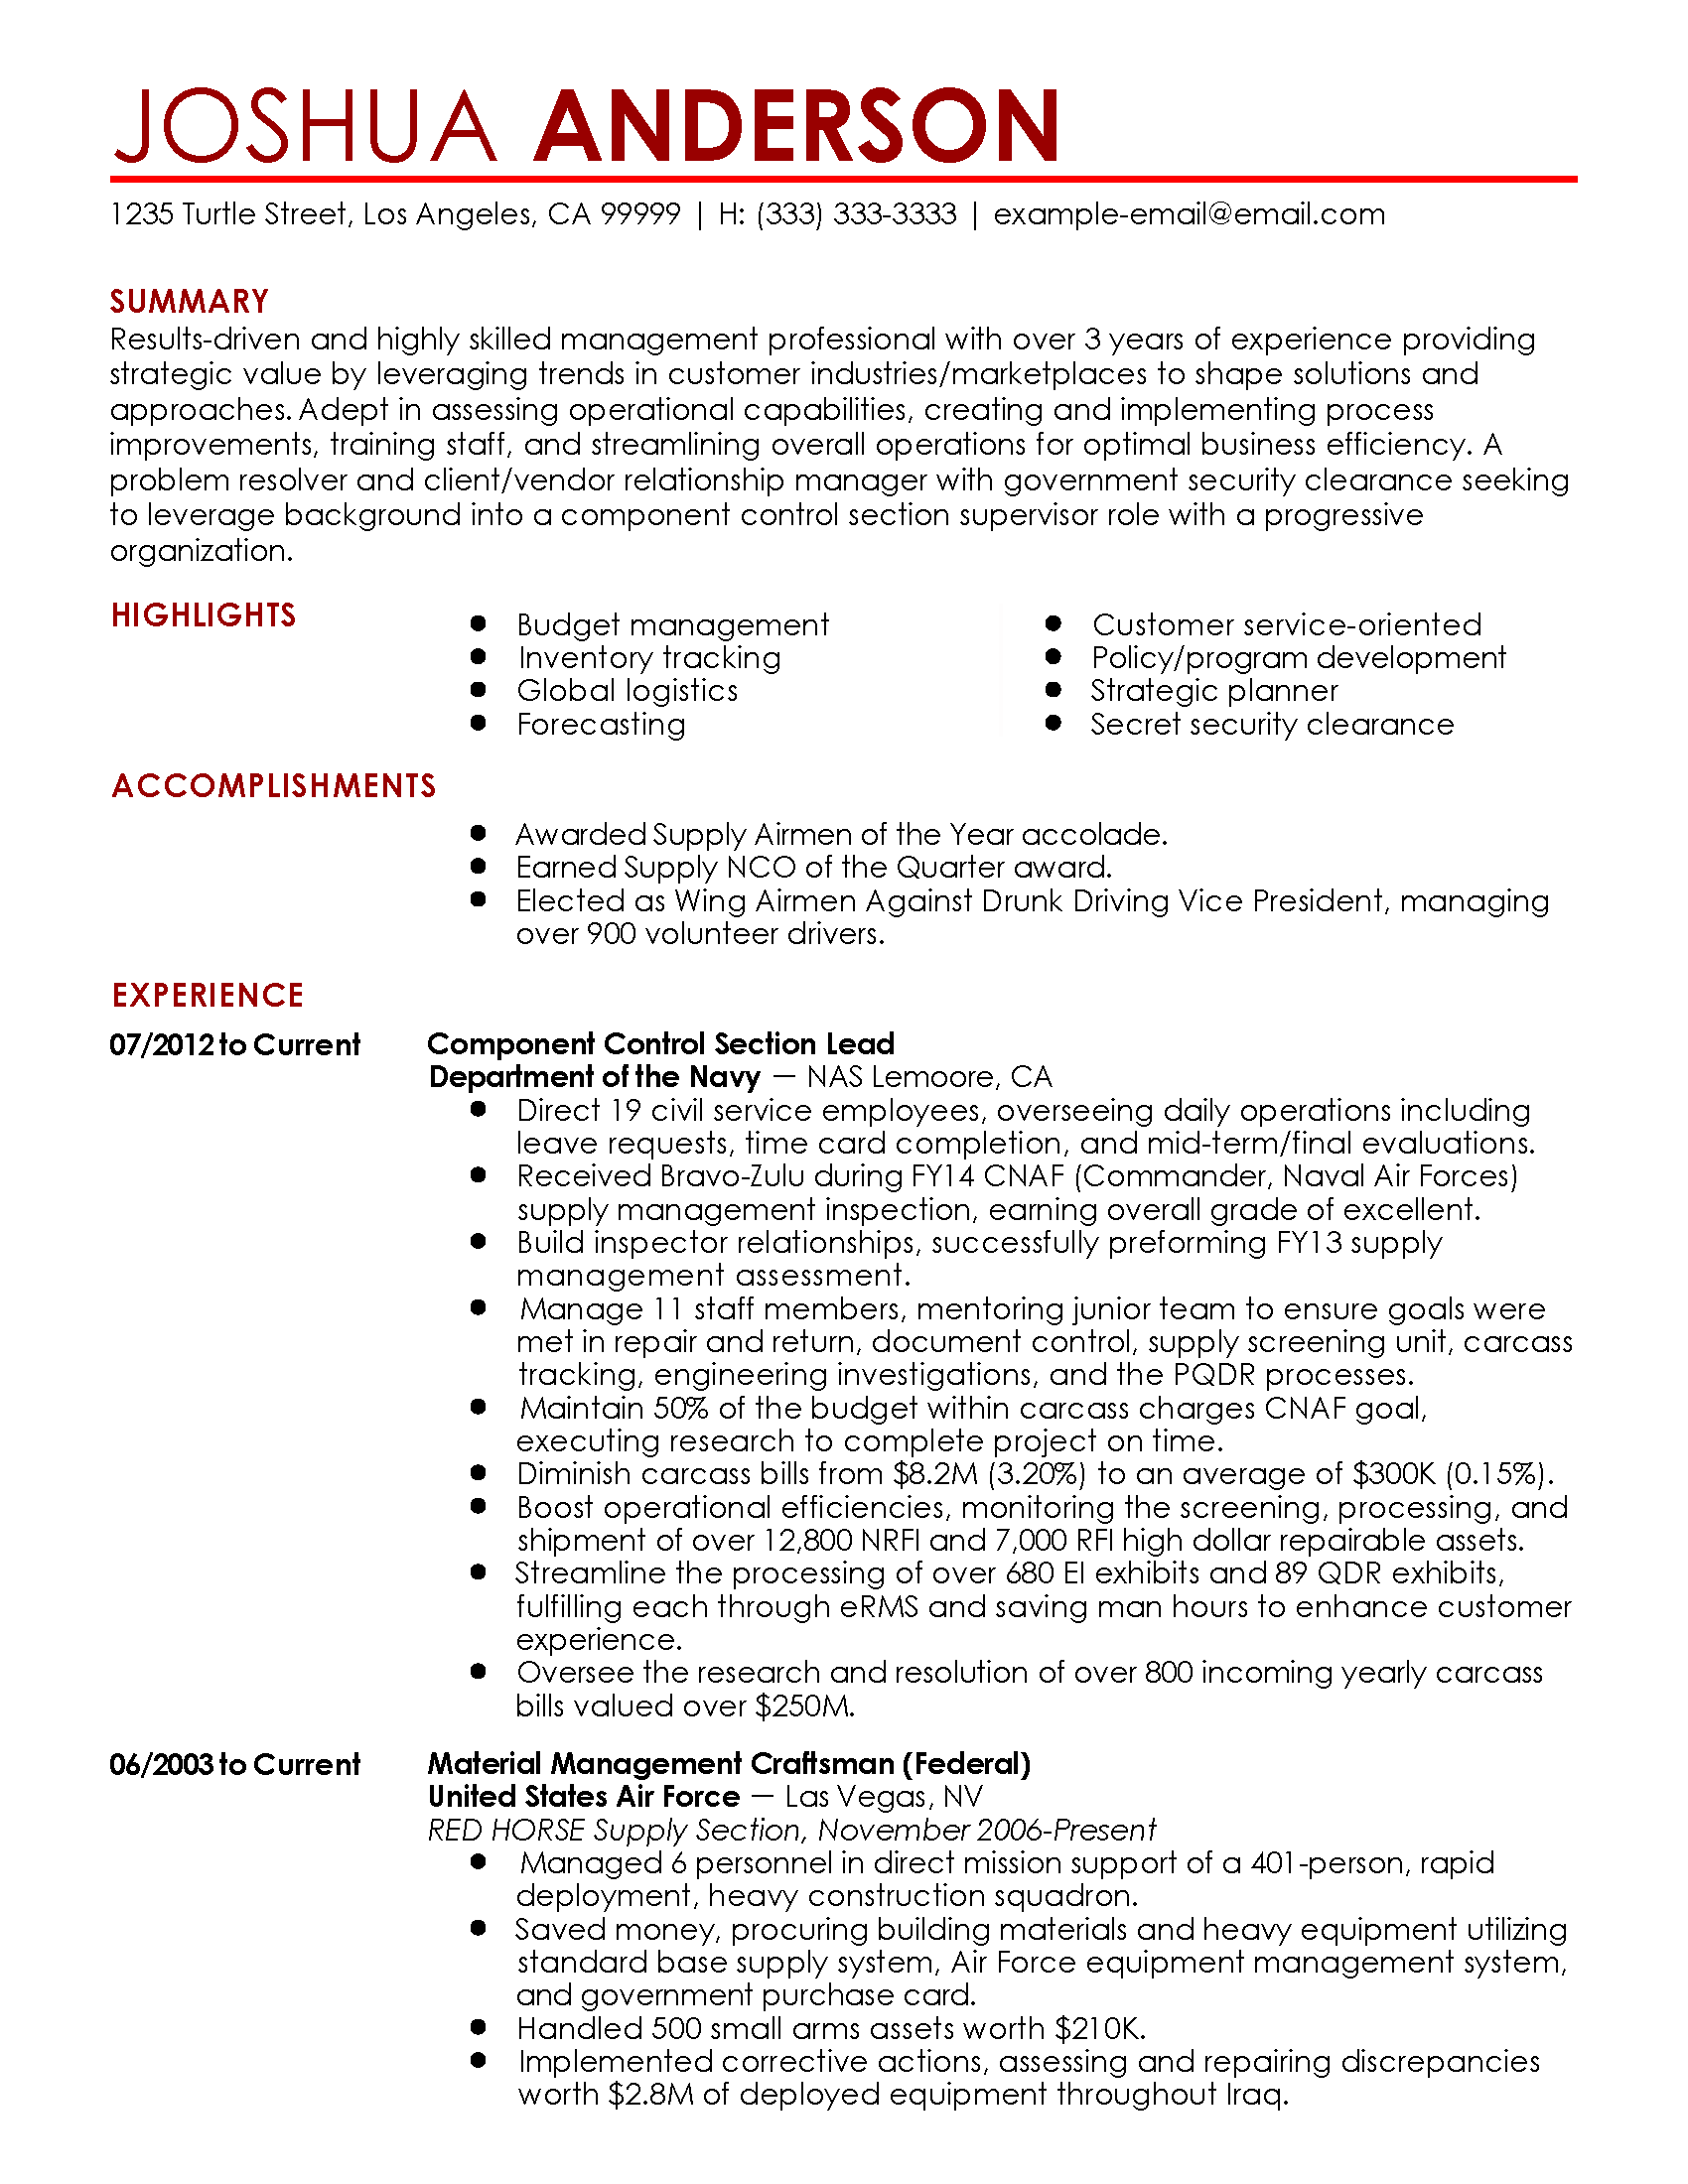 Construct A Functional Resume Resume For Management Experience